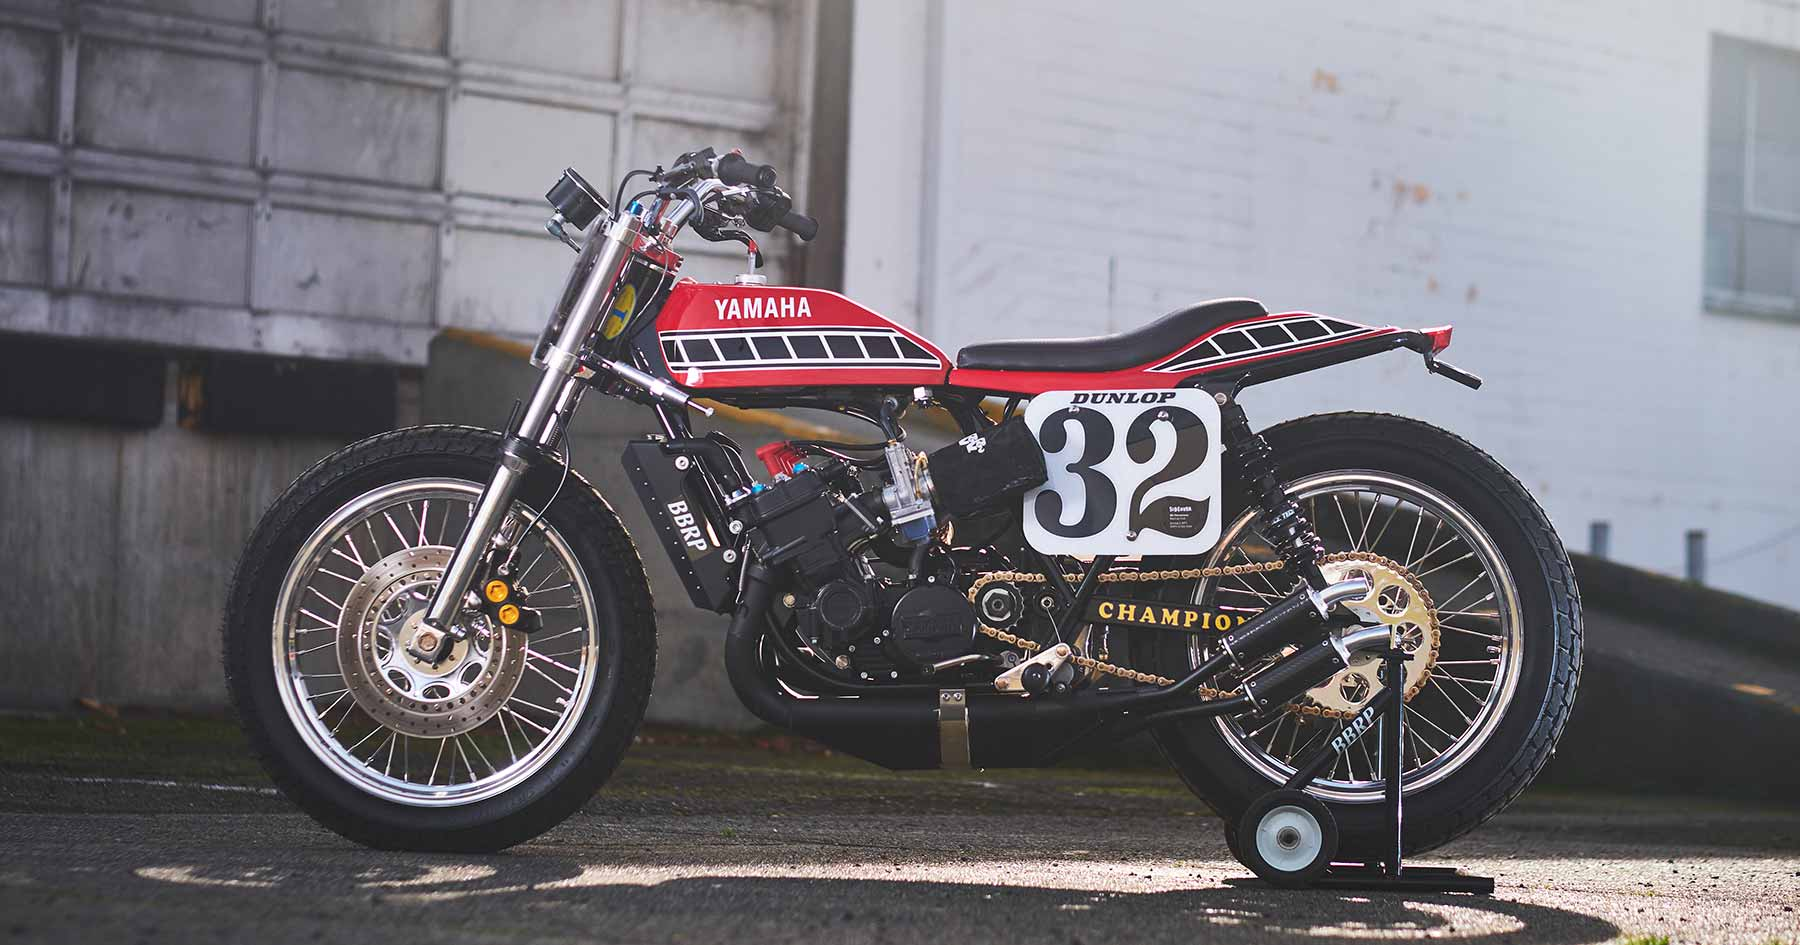 This scary TZ750 flat track racer is also street legal